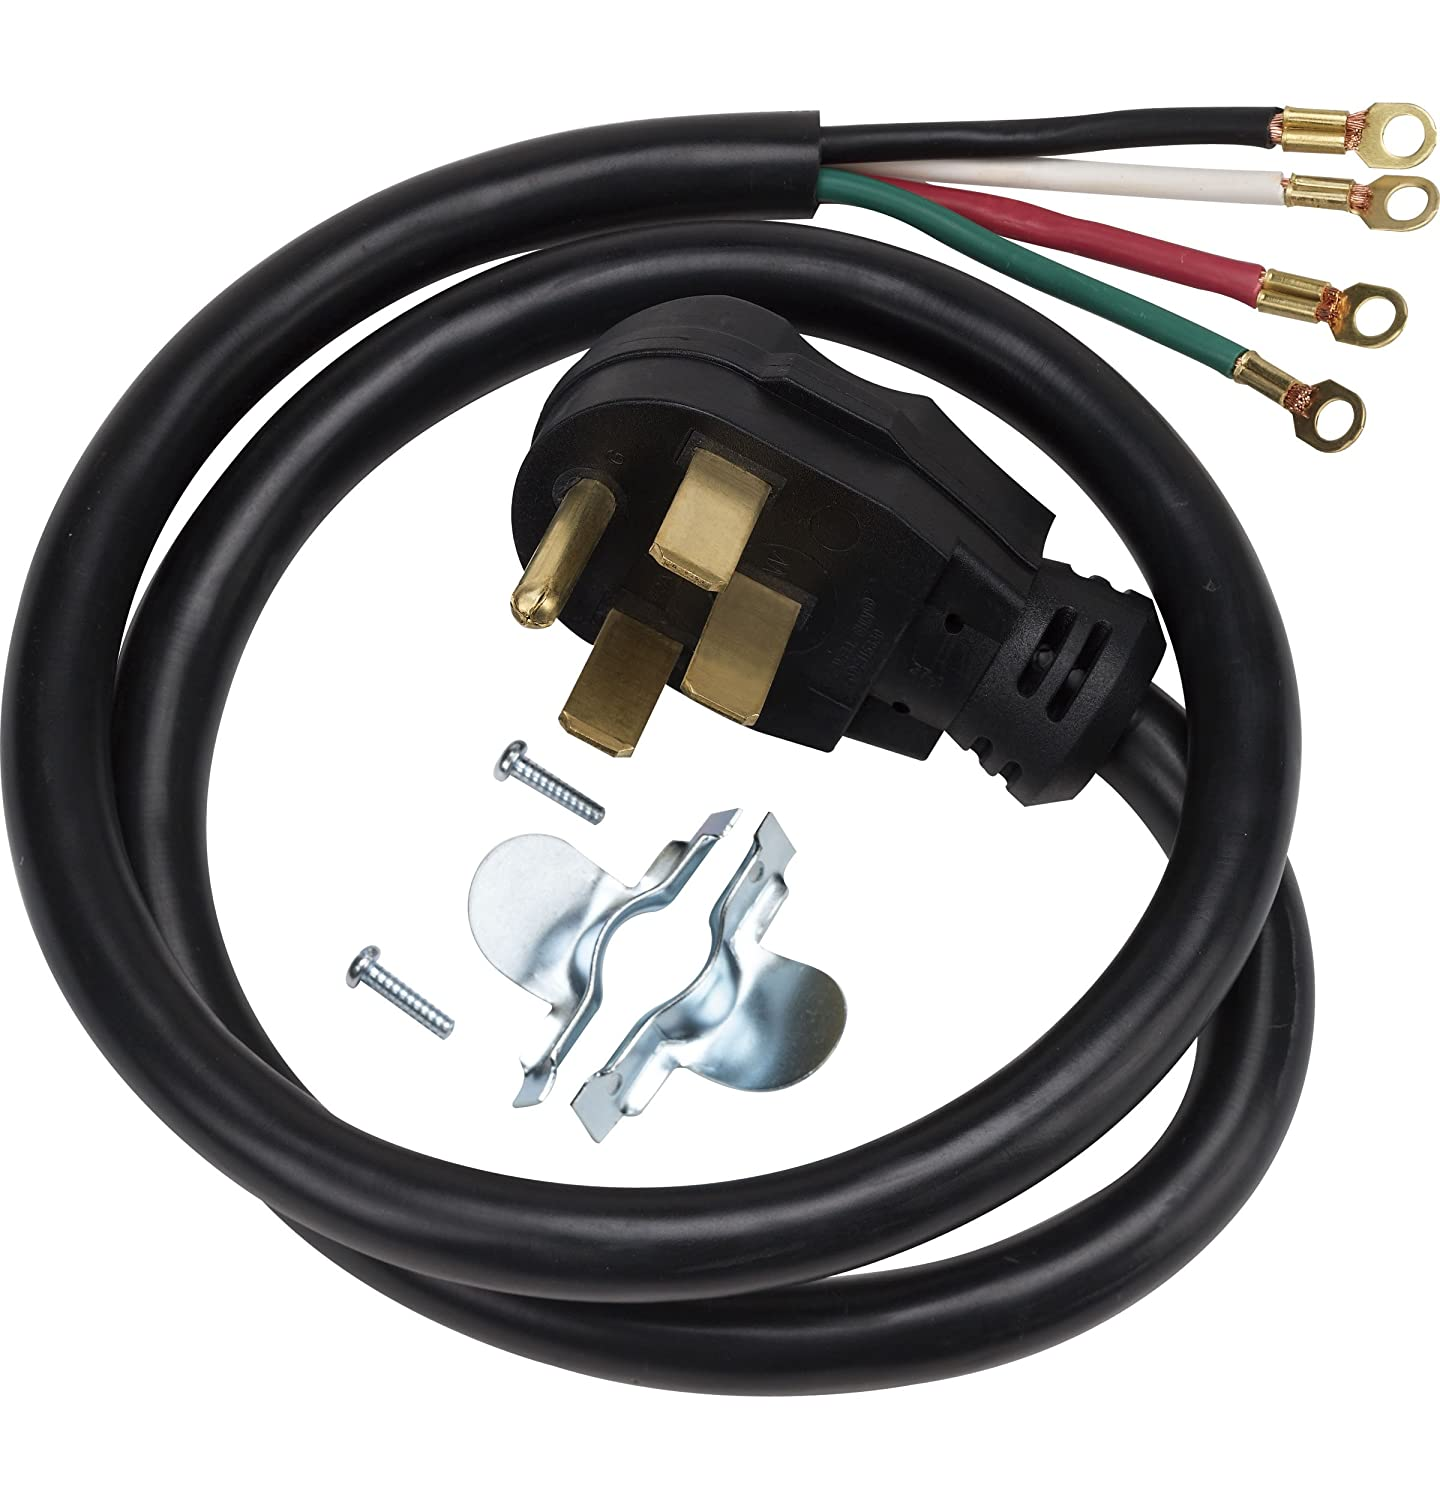 Safely Use Extension Cords When Charging An Electric Car Or Also 220 Volt Welder To Generator Adapter On Cord Wiring General Wx9x35 4 Wire Range Foot